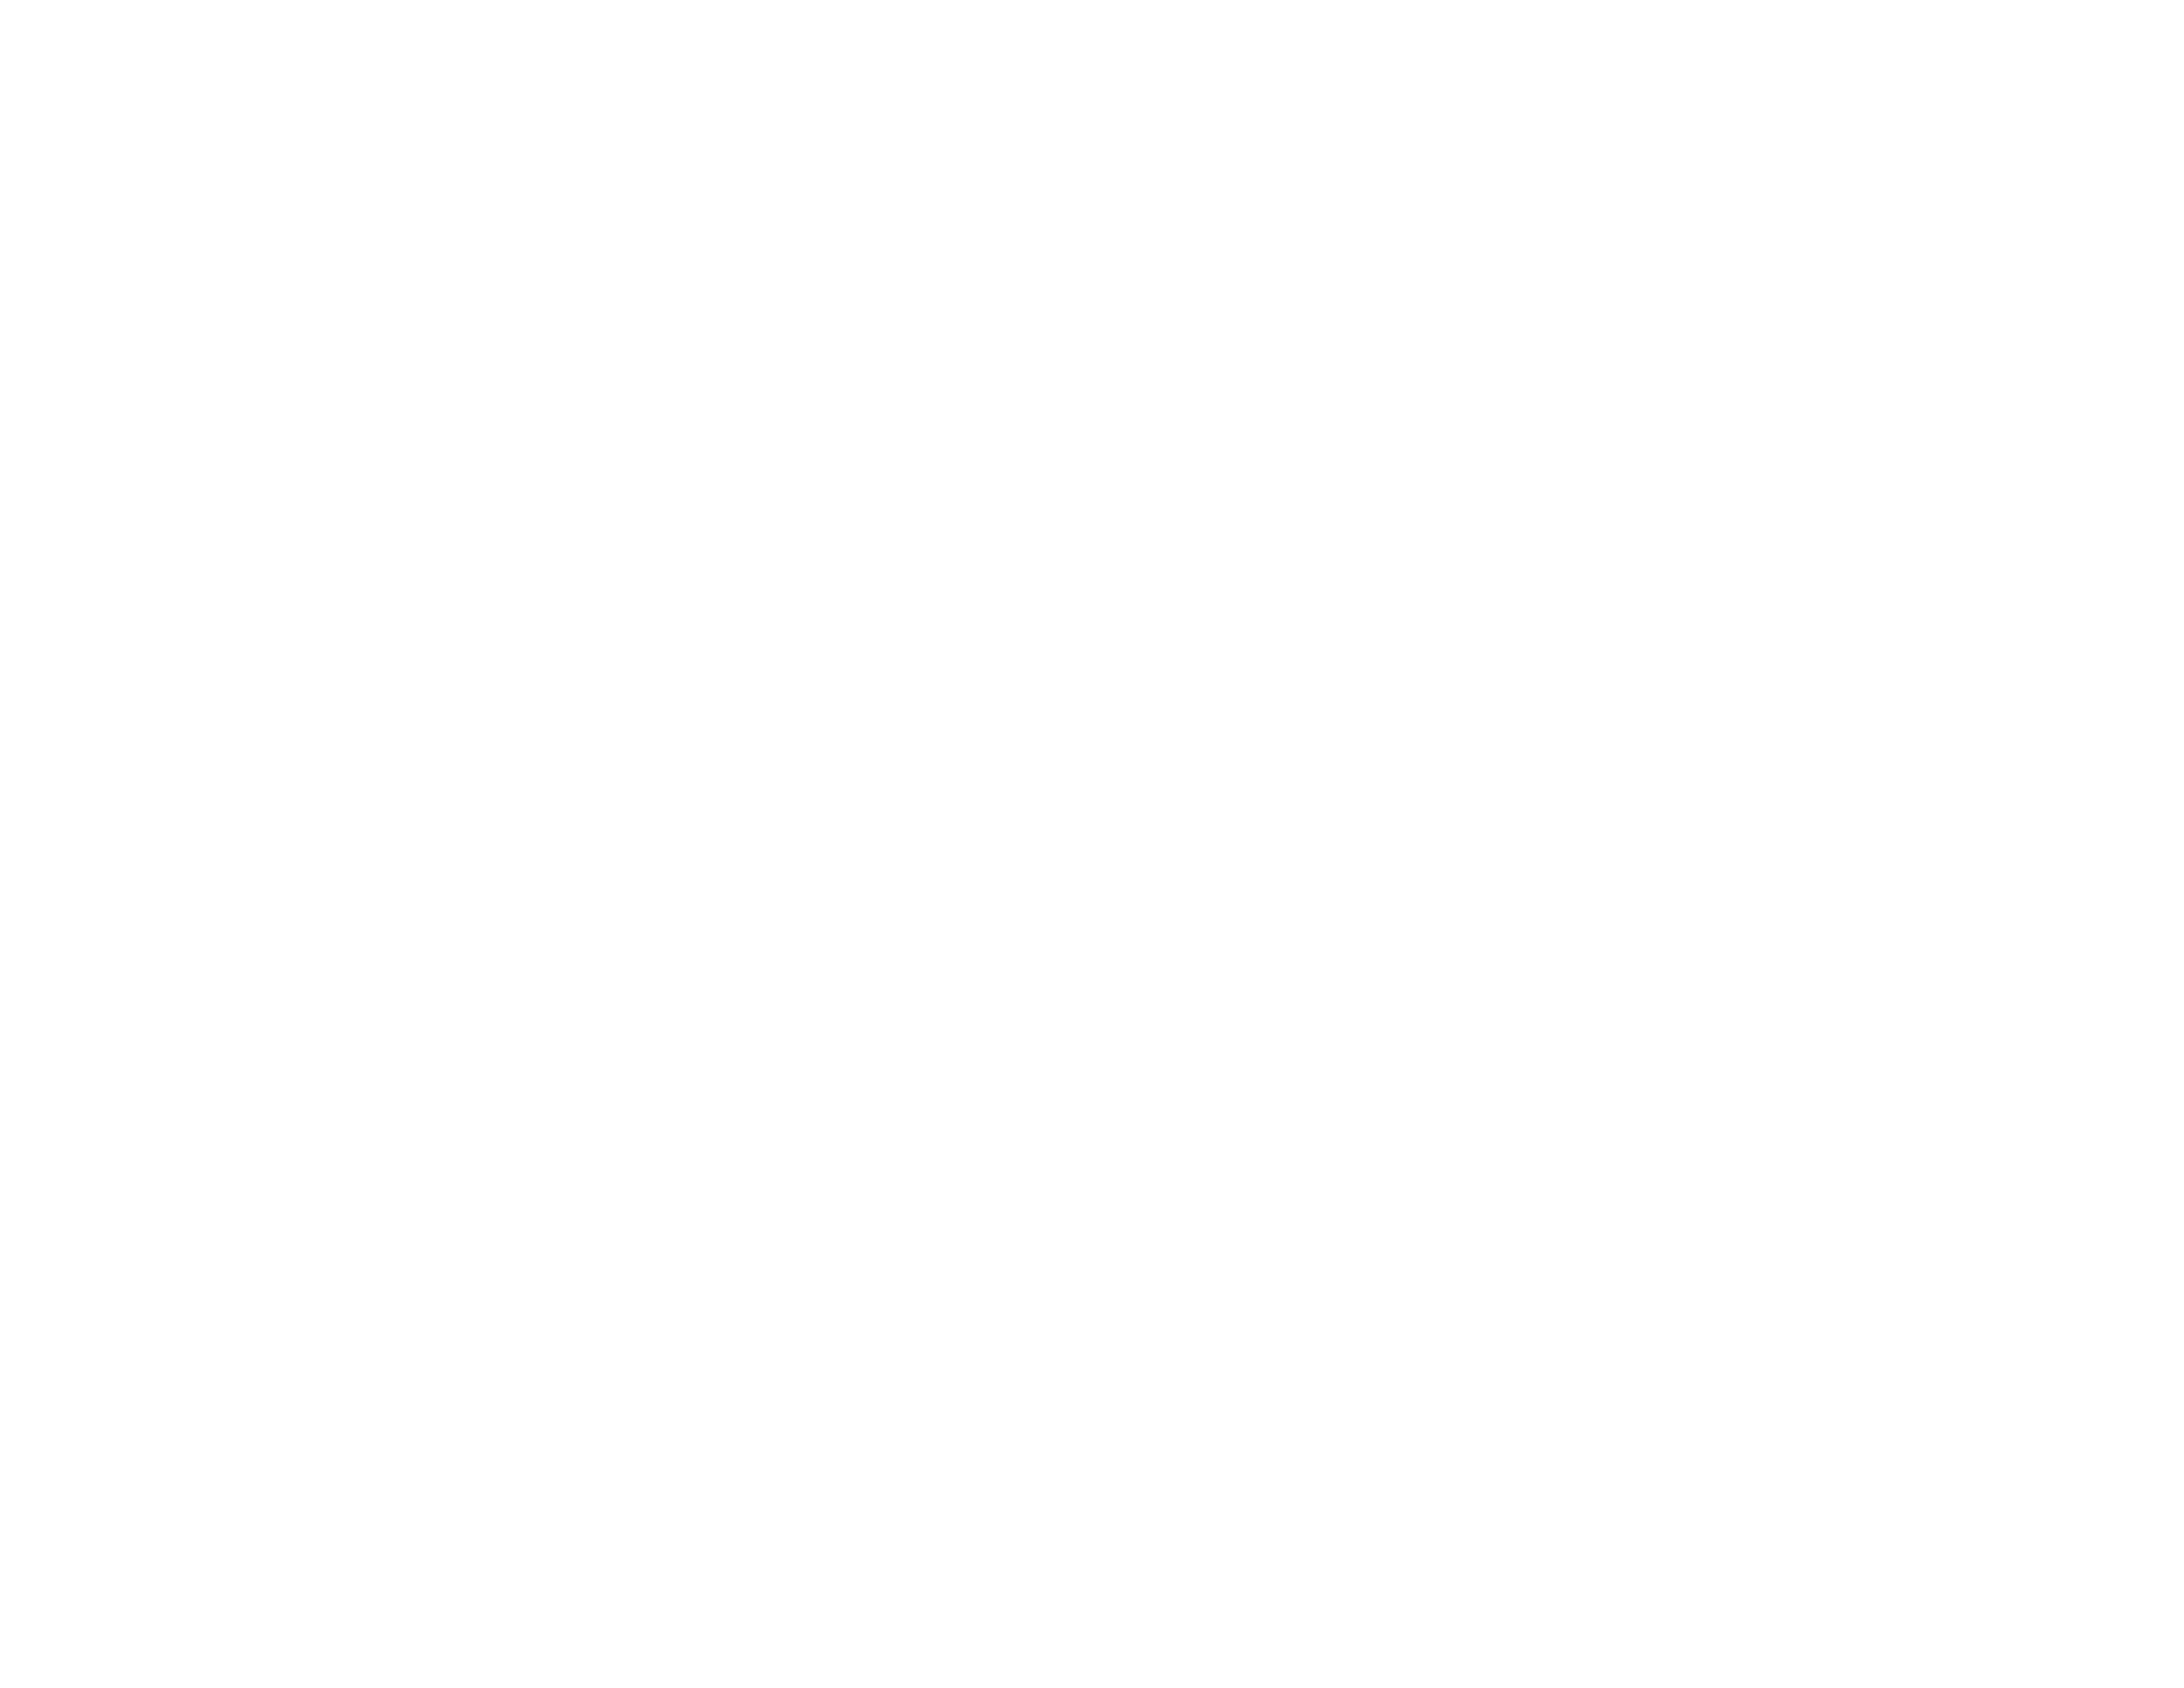 Au Sable River Property Owners Association